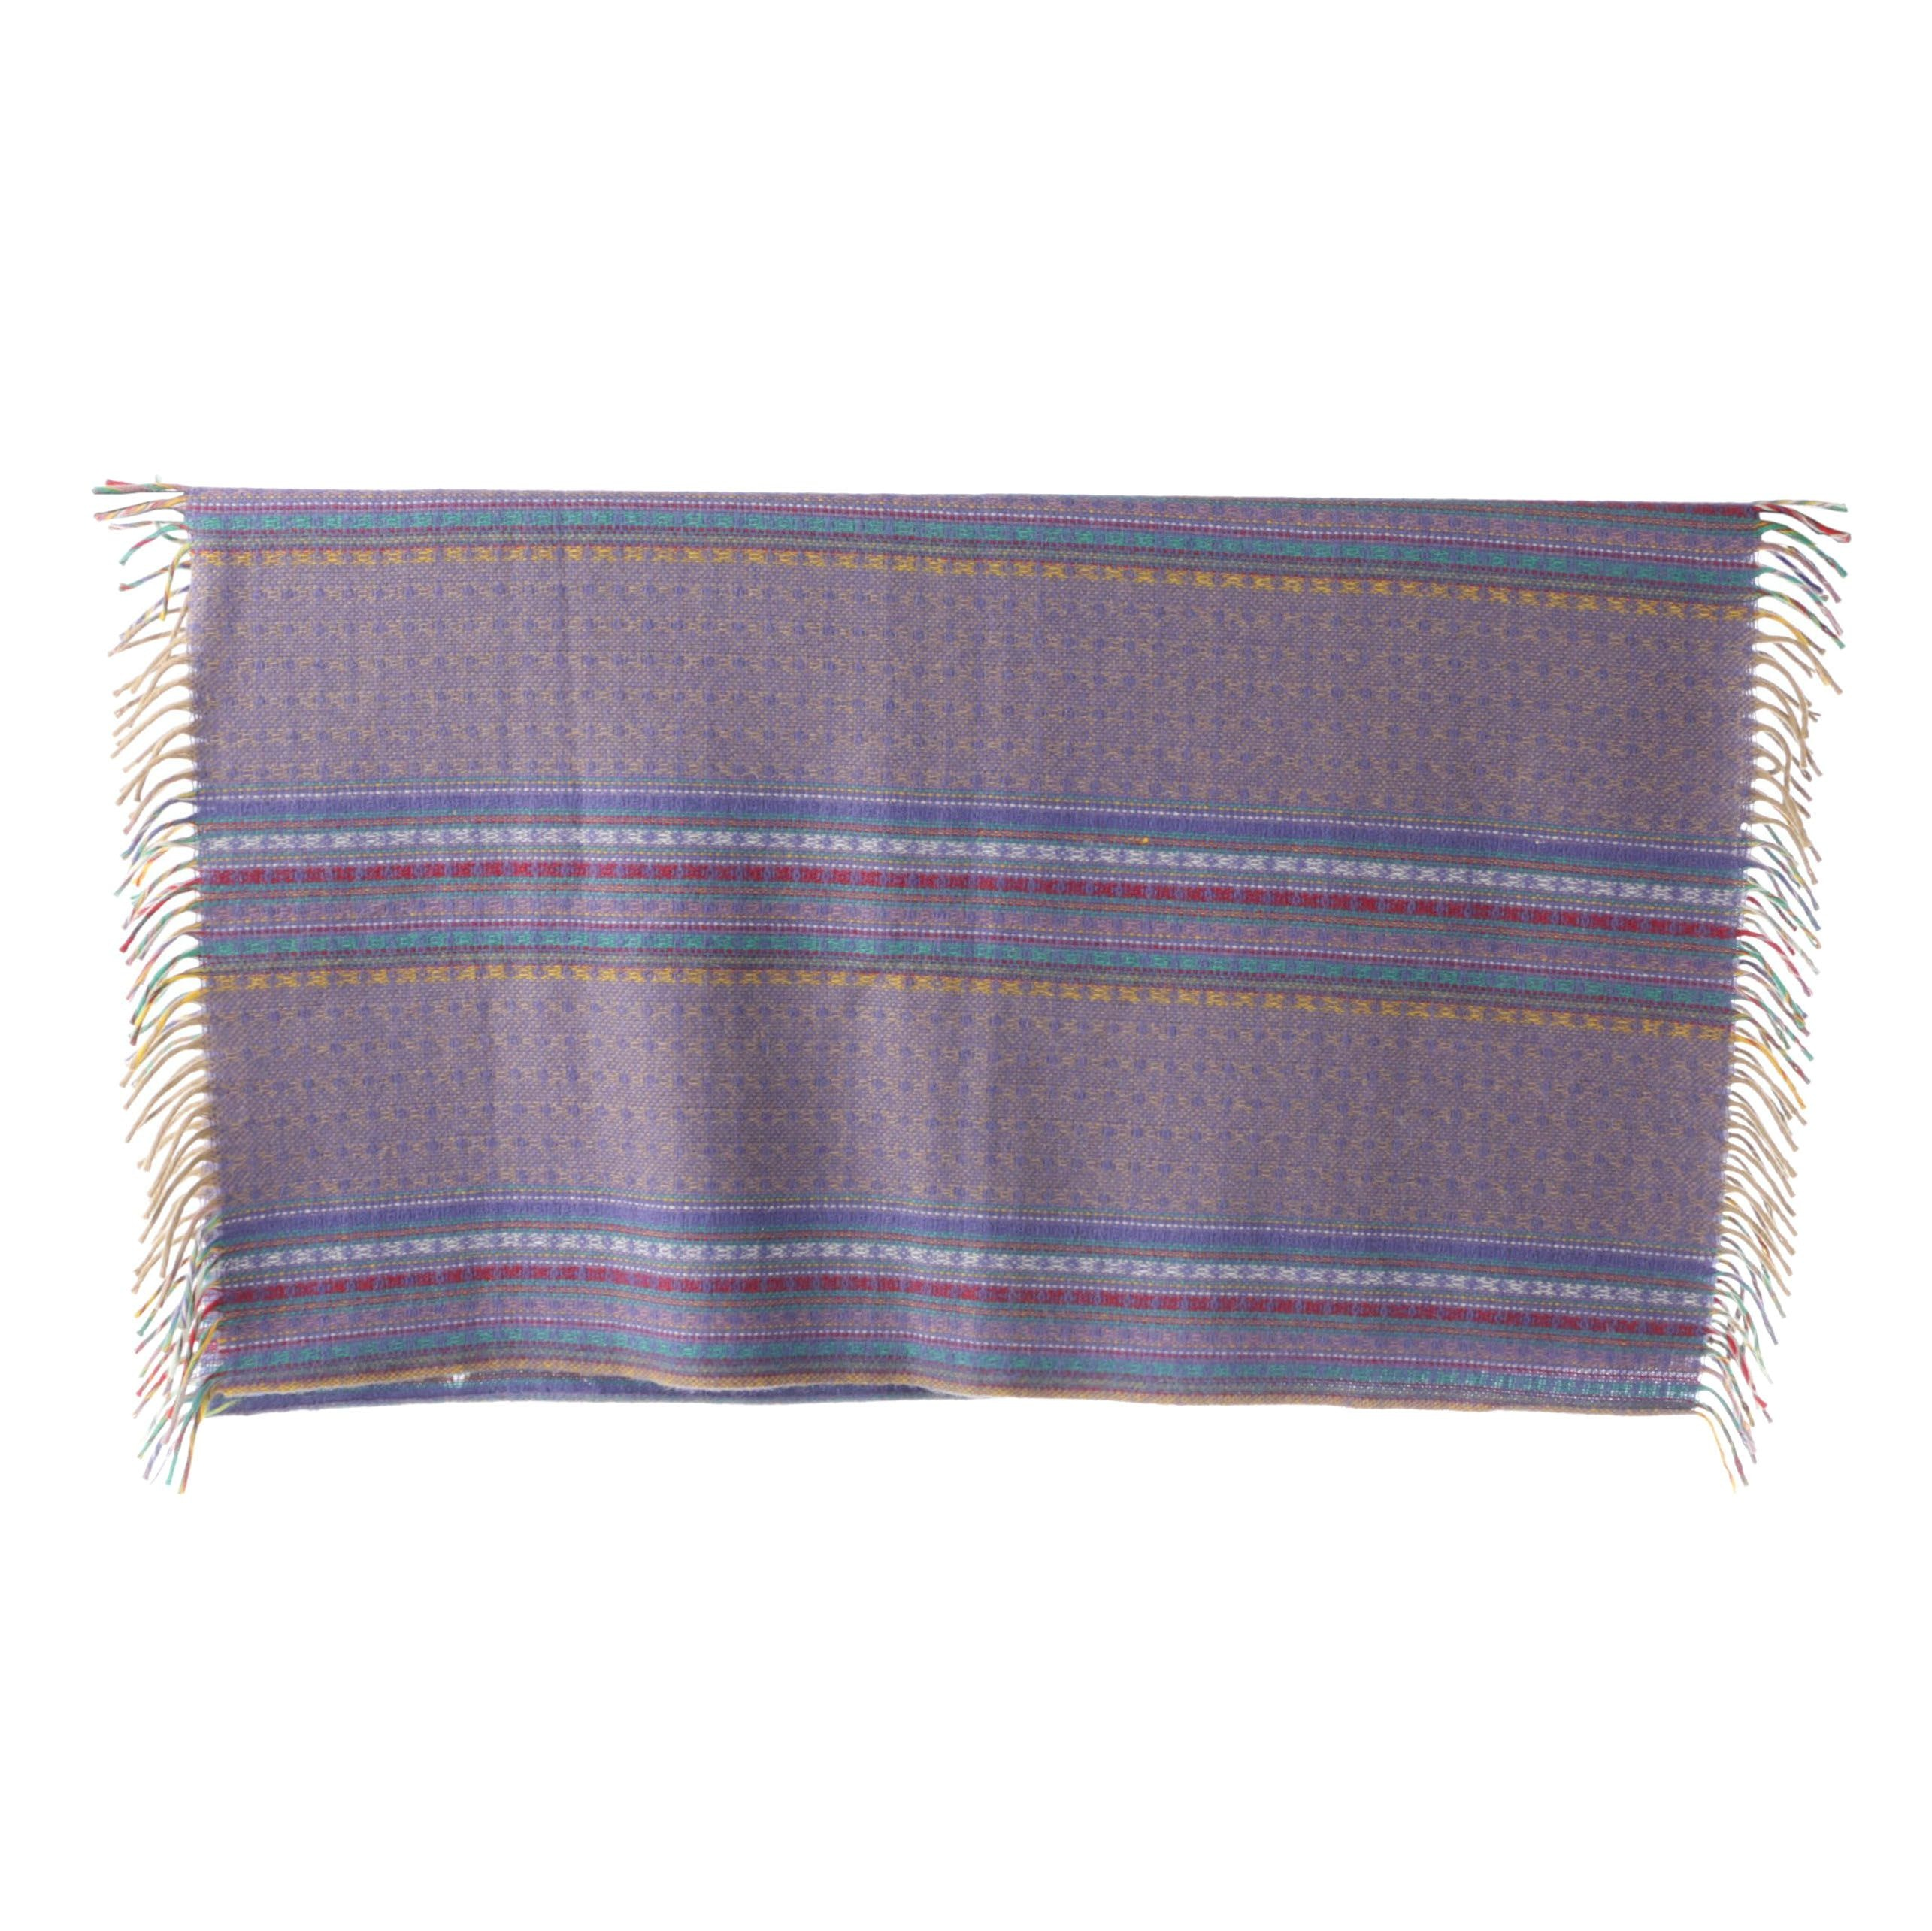 Woven Multicolored Wool Striped Pattern Fringed Throw